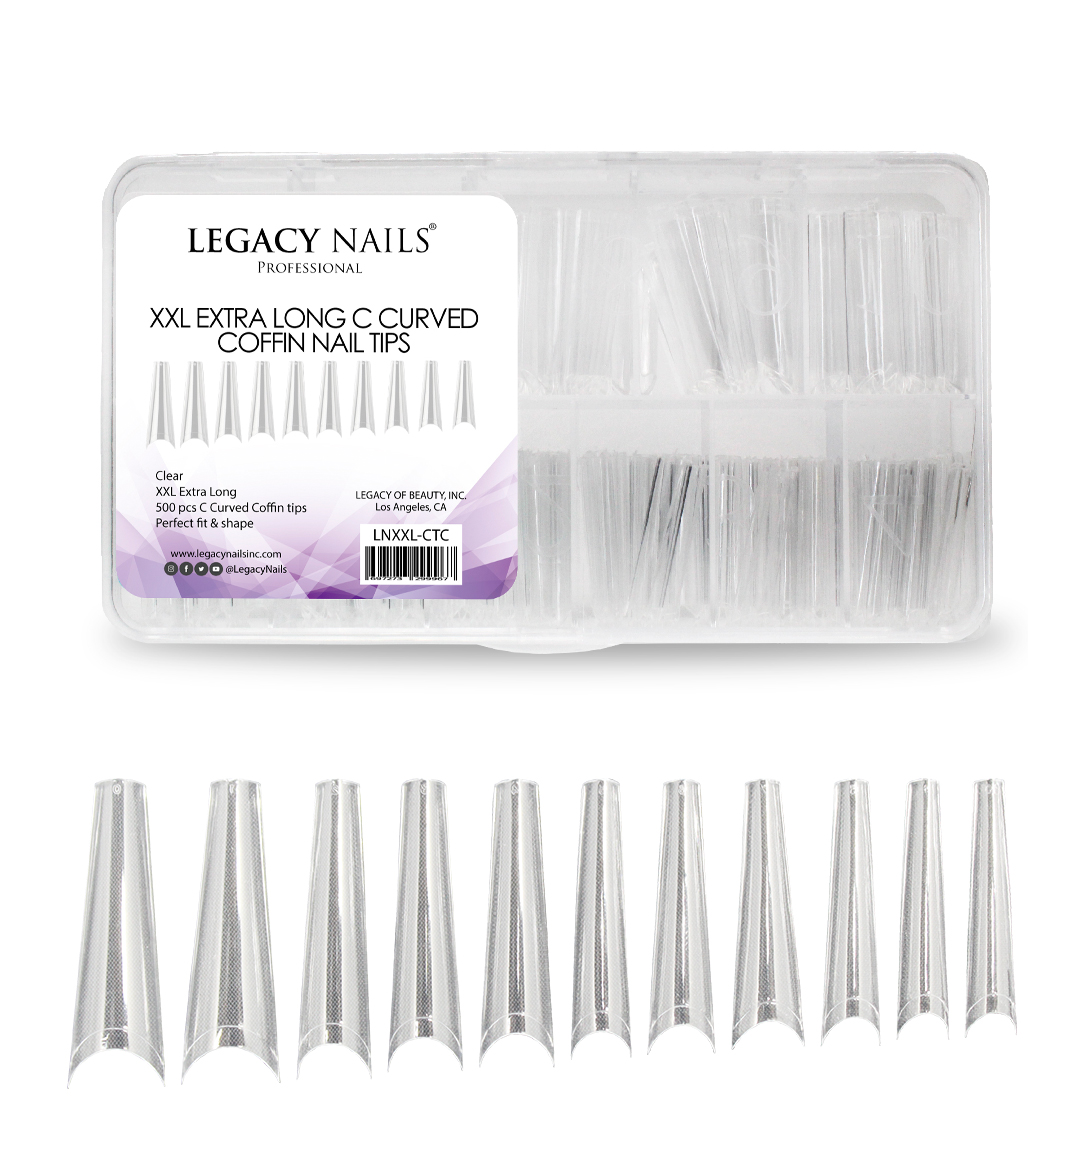 xxl extra long c curved coffin nail tips